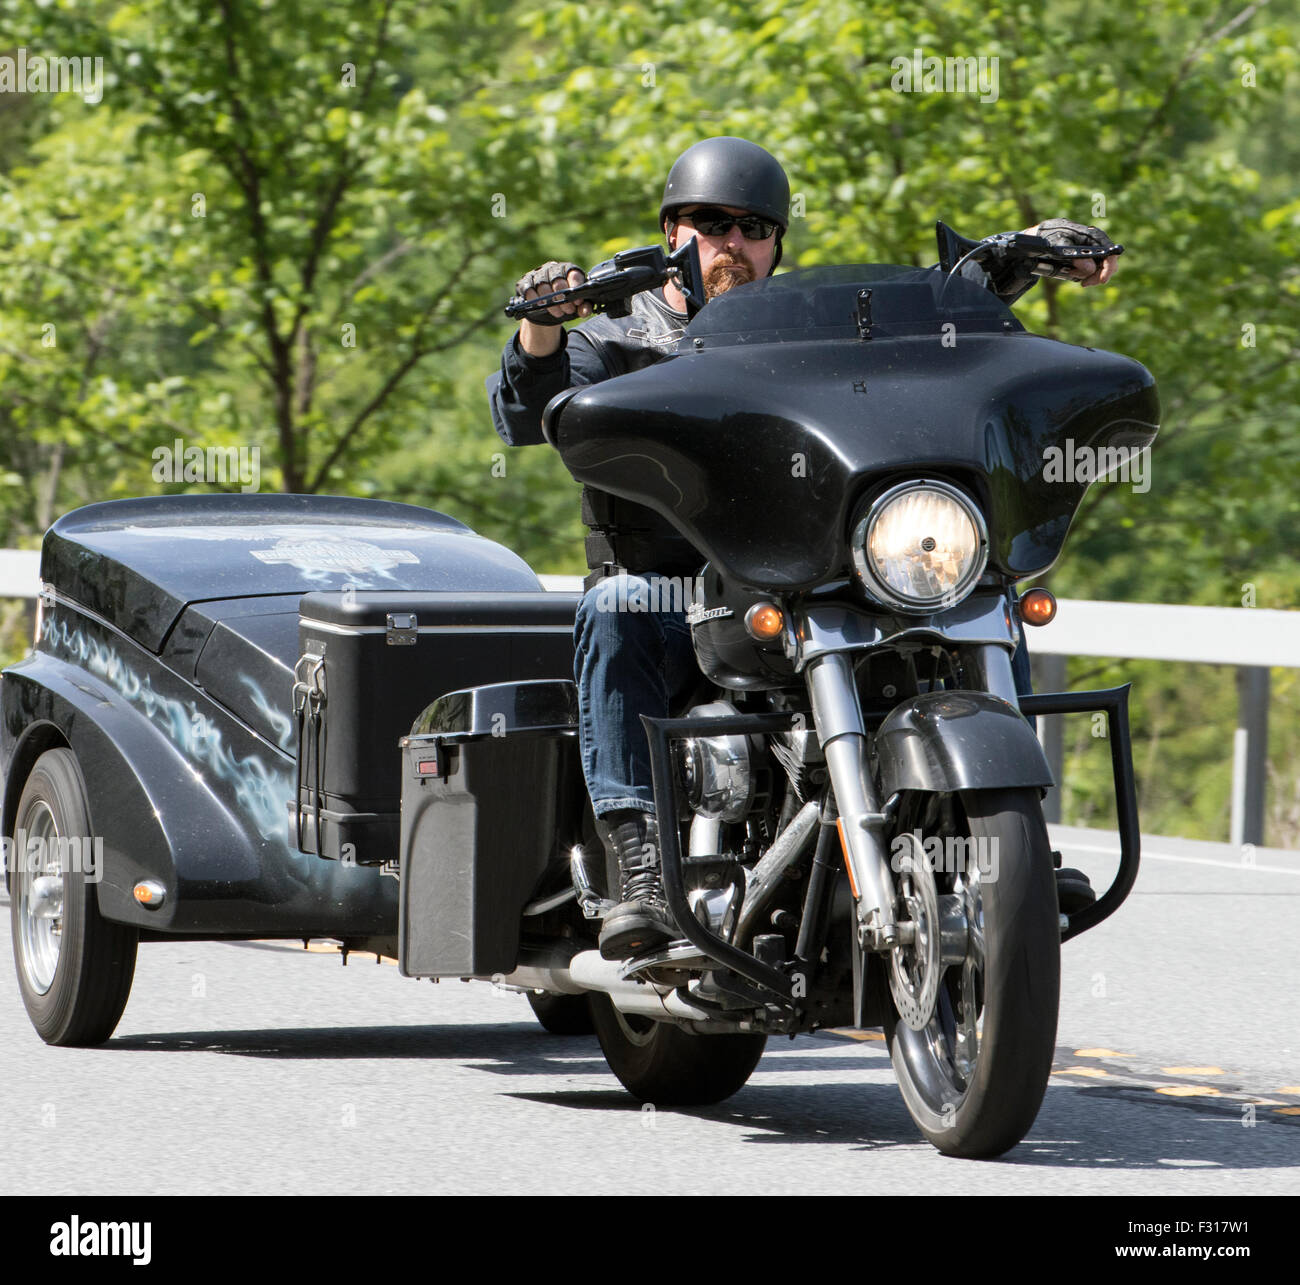 harley davidson motorcycle and trailer stock photo, royalty free